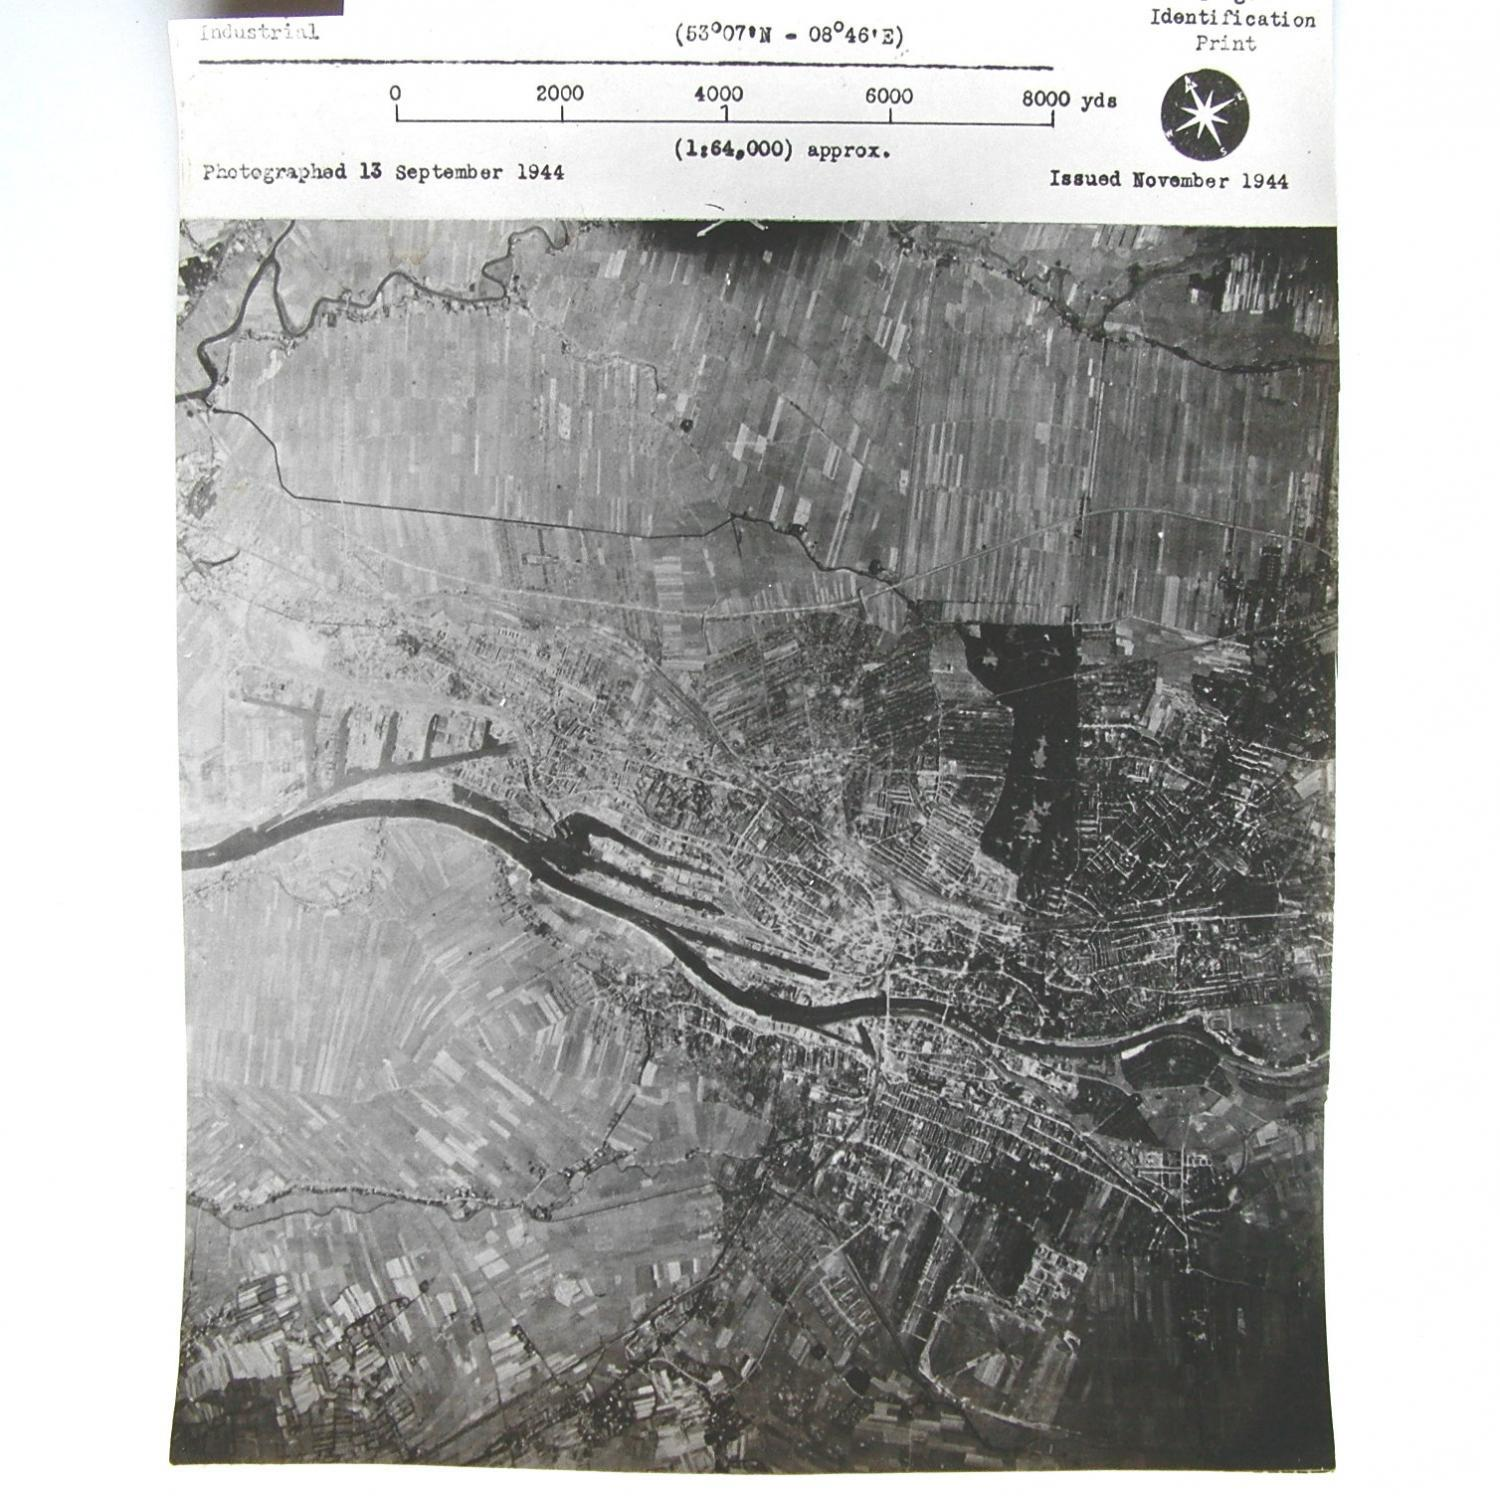 USAAF 91st Bomb Group Target Photo #6